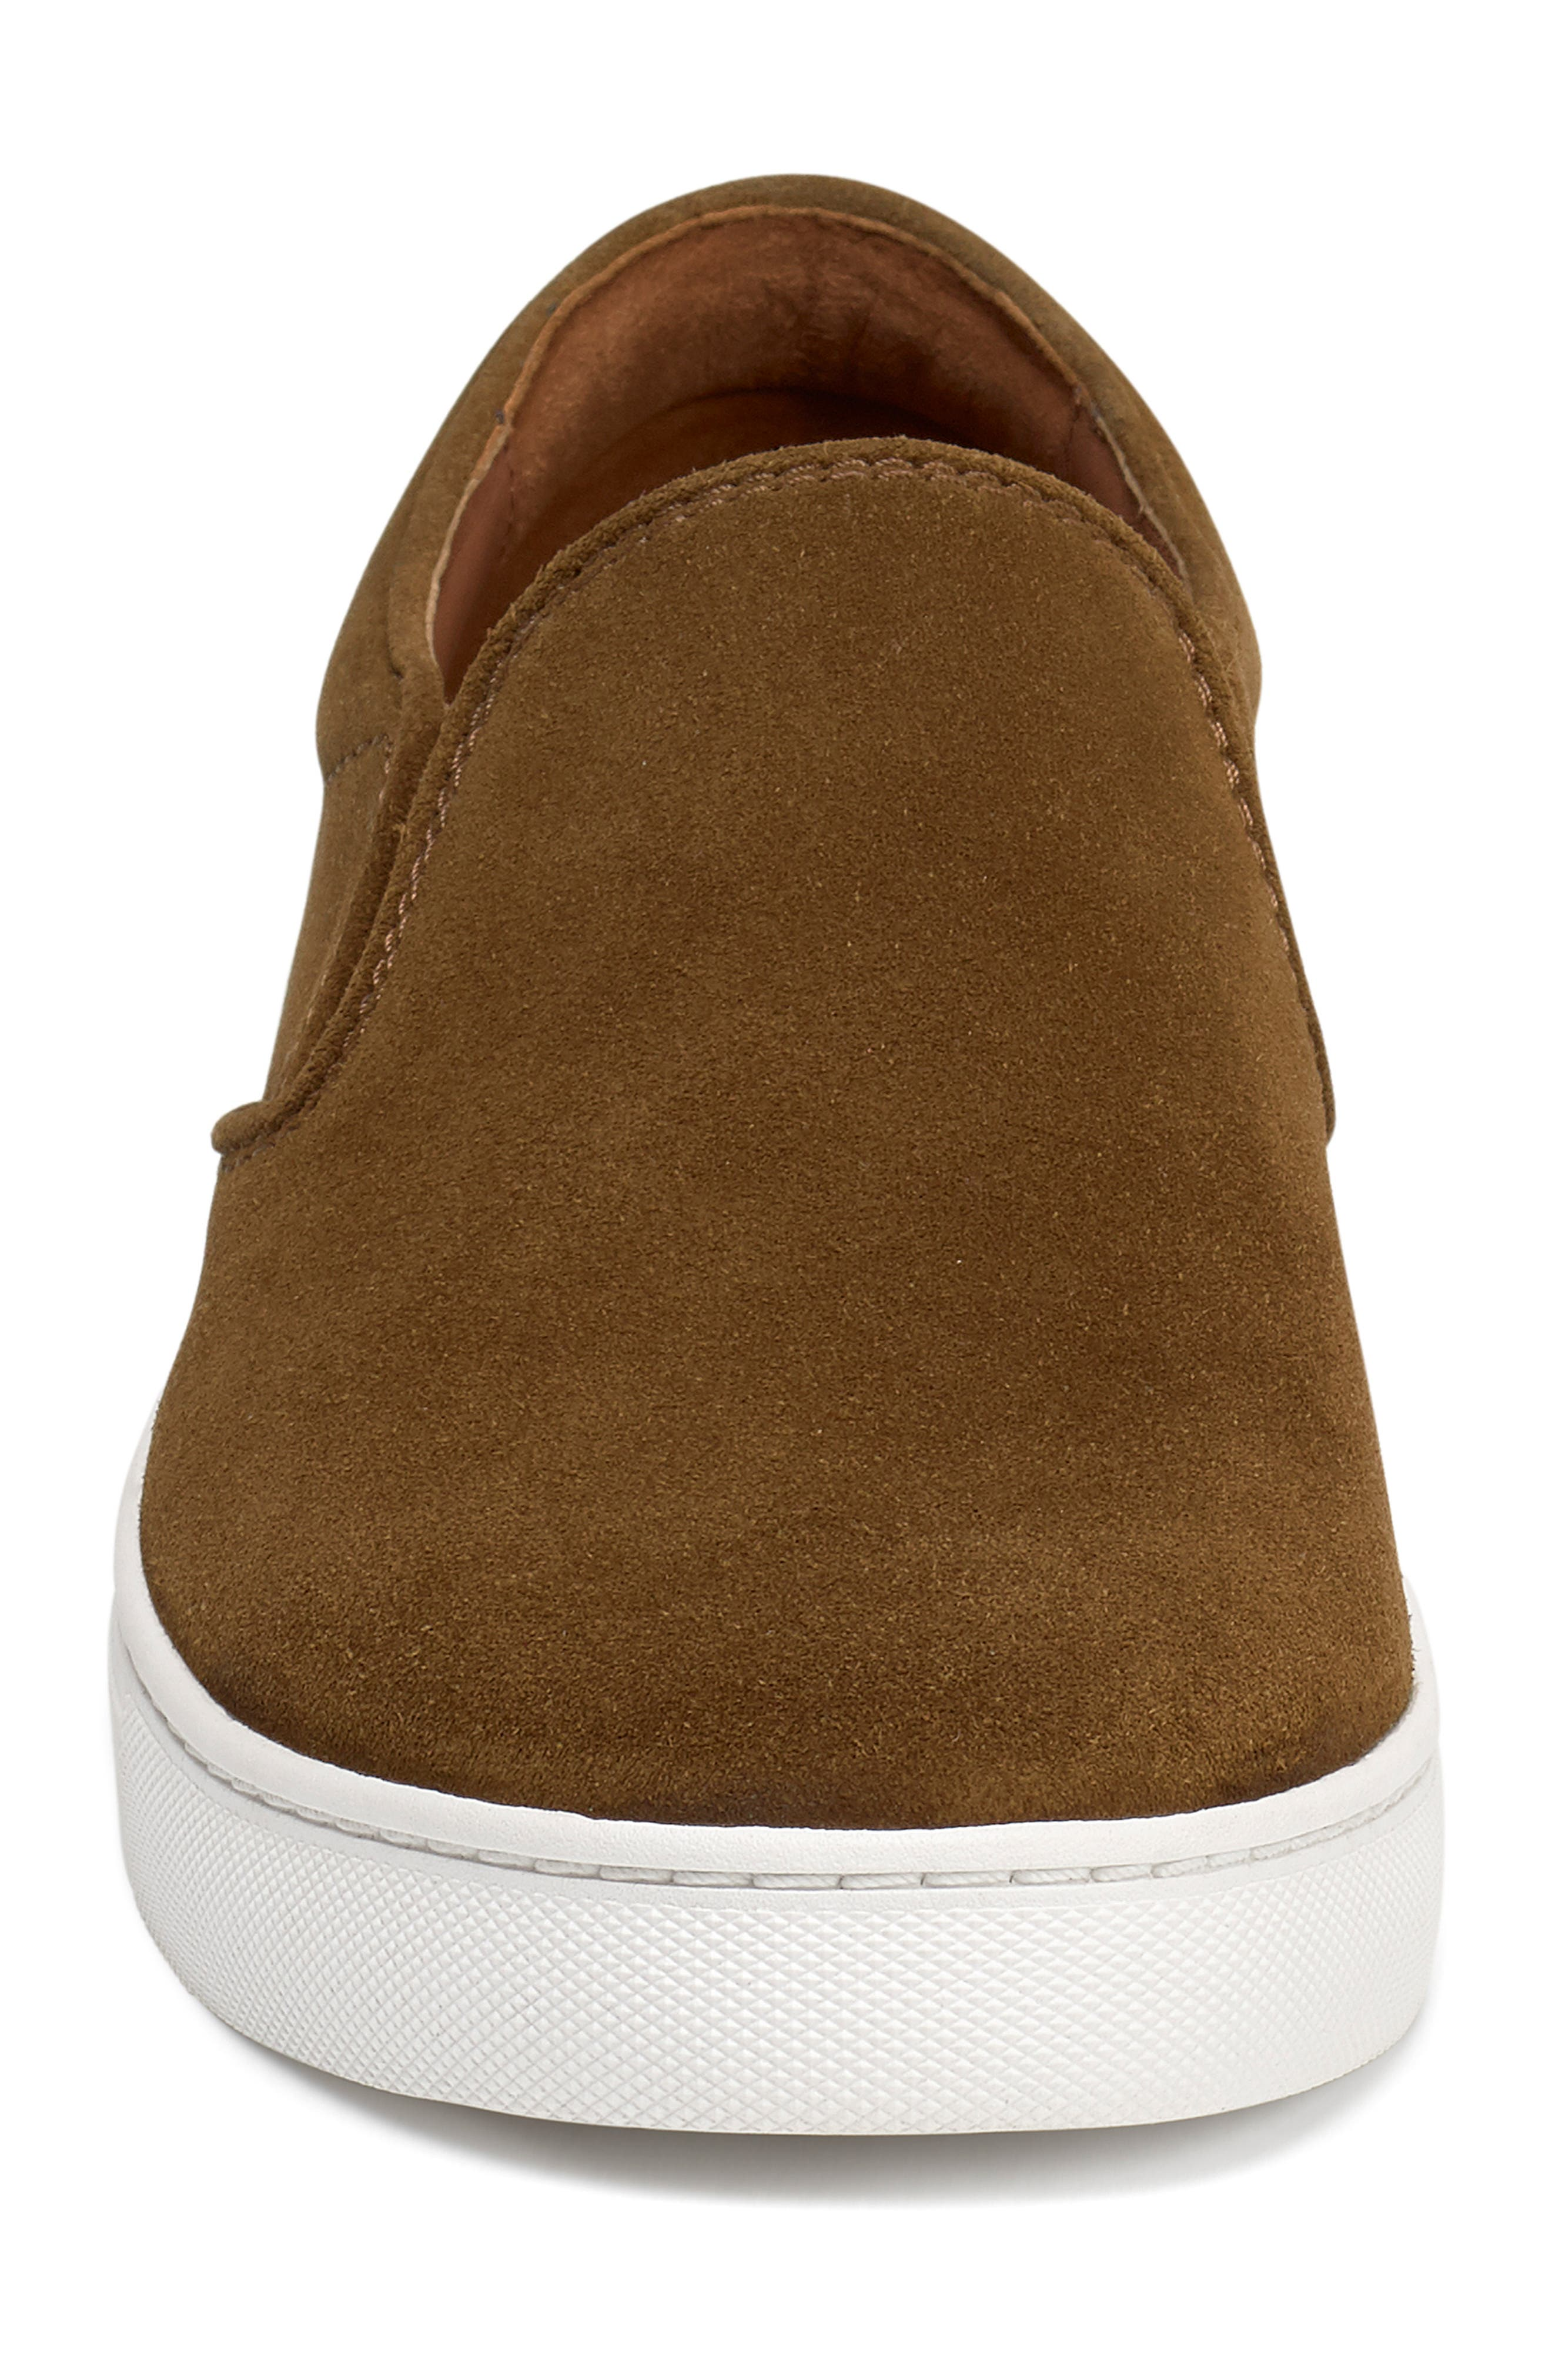 TRASK, Alex Slip-On Sneaker, Alternate thumbnail 4, color, SNUFF SUEDE